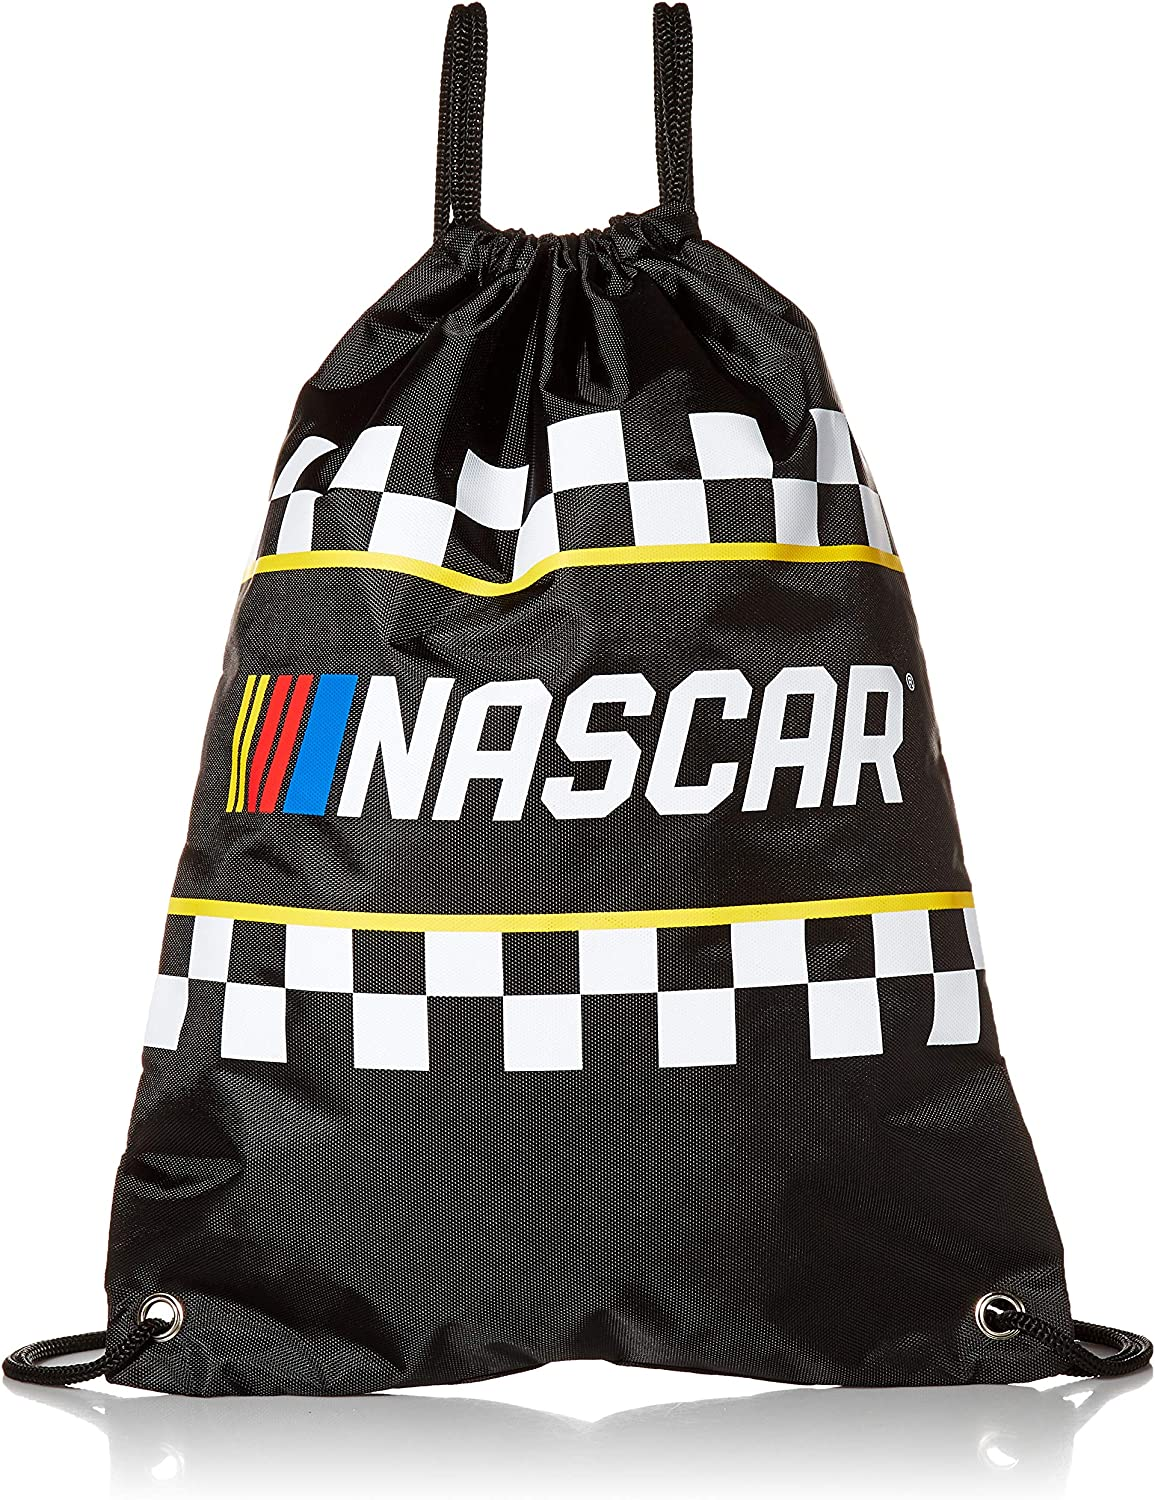 2021new shipping free shipping NASCAR Unisex Drawstring Backpack free Color Team Size One